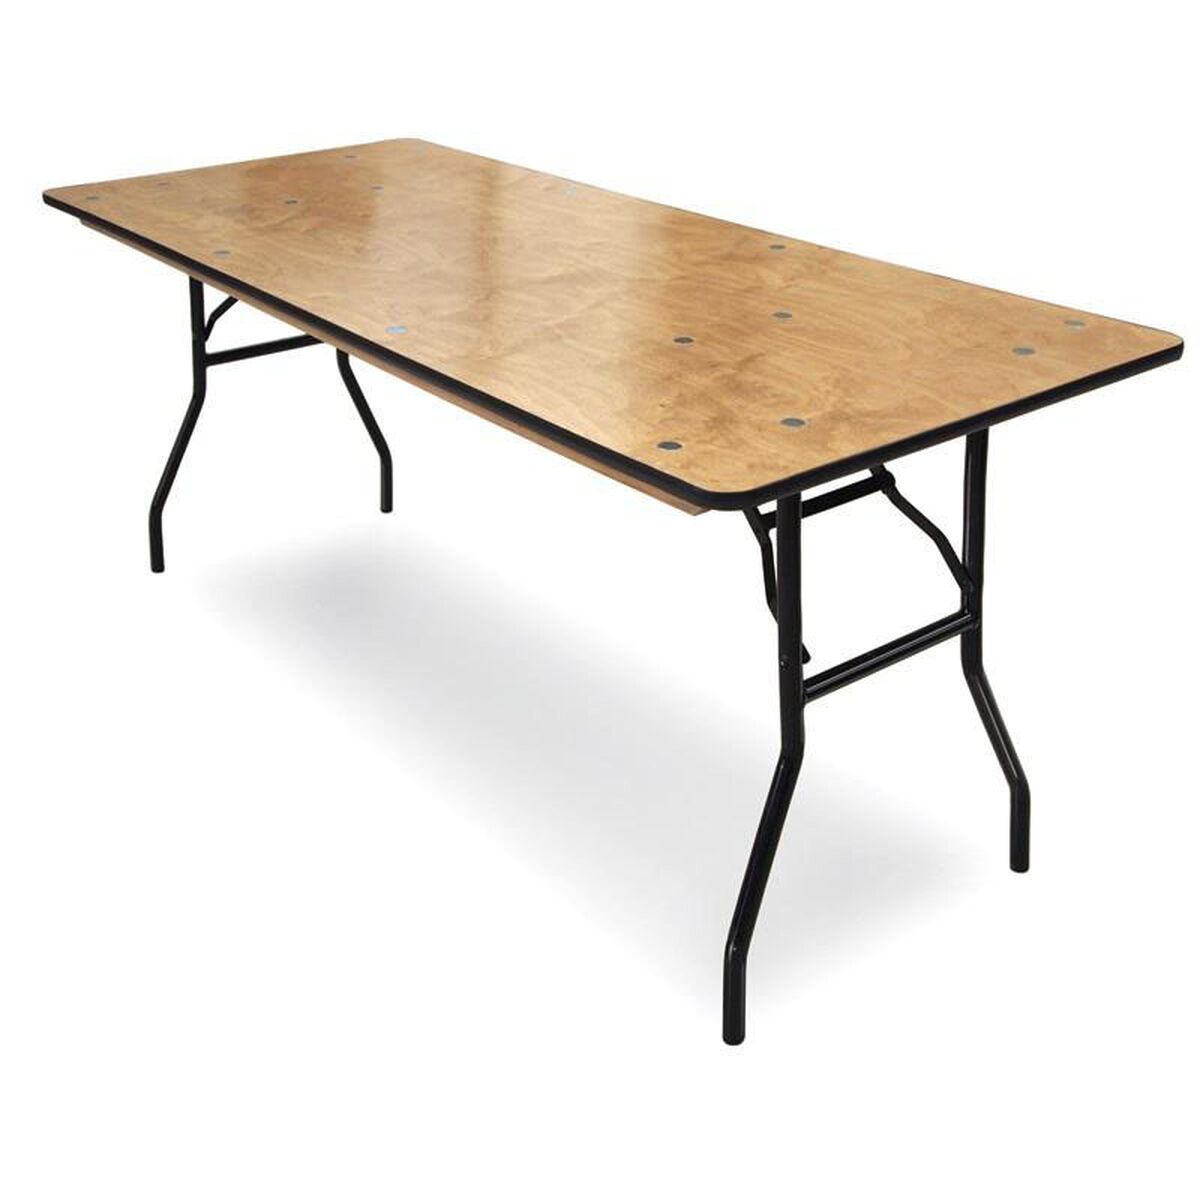 Mccourt manufacturing plywood folding table with locking for Html table style